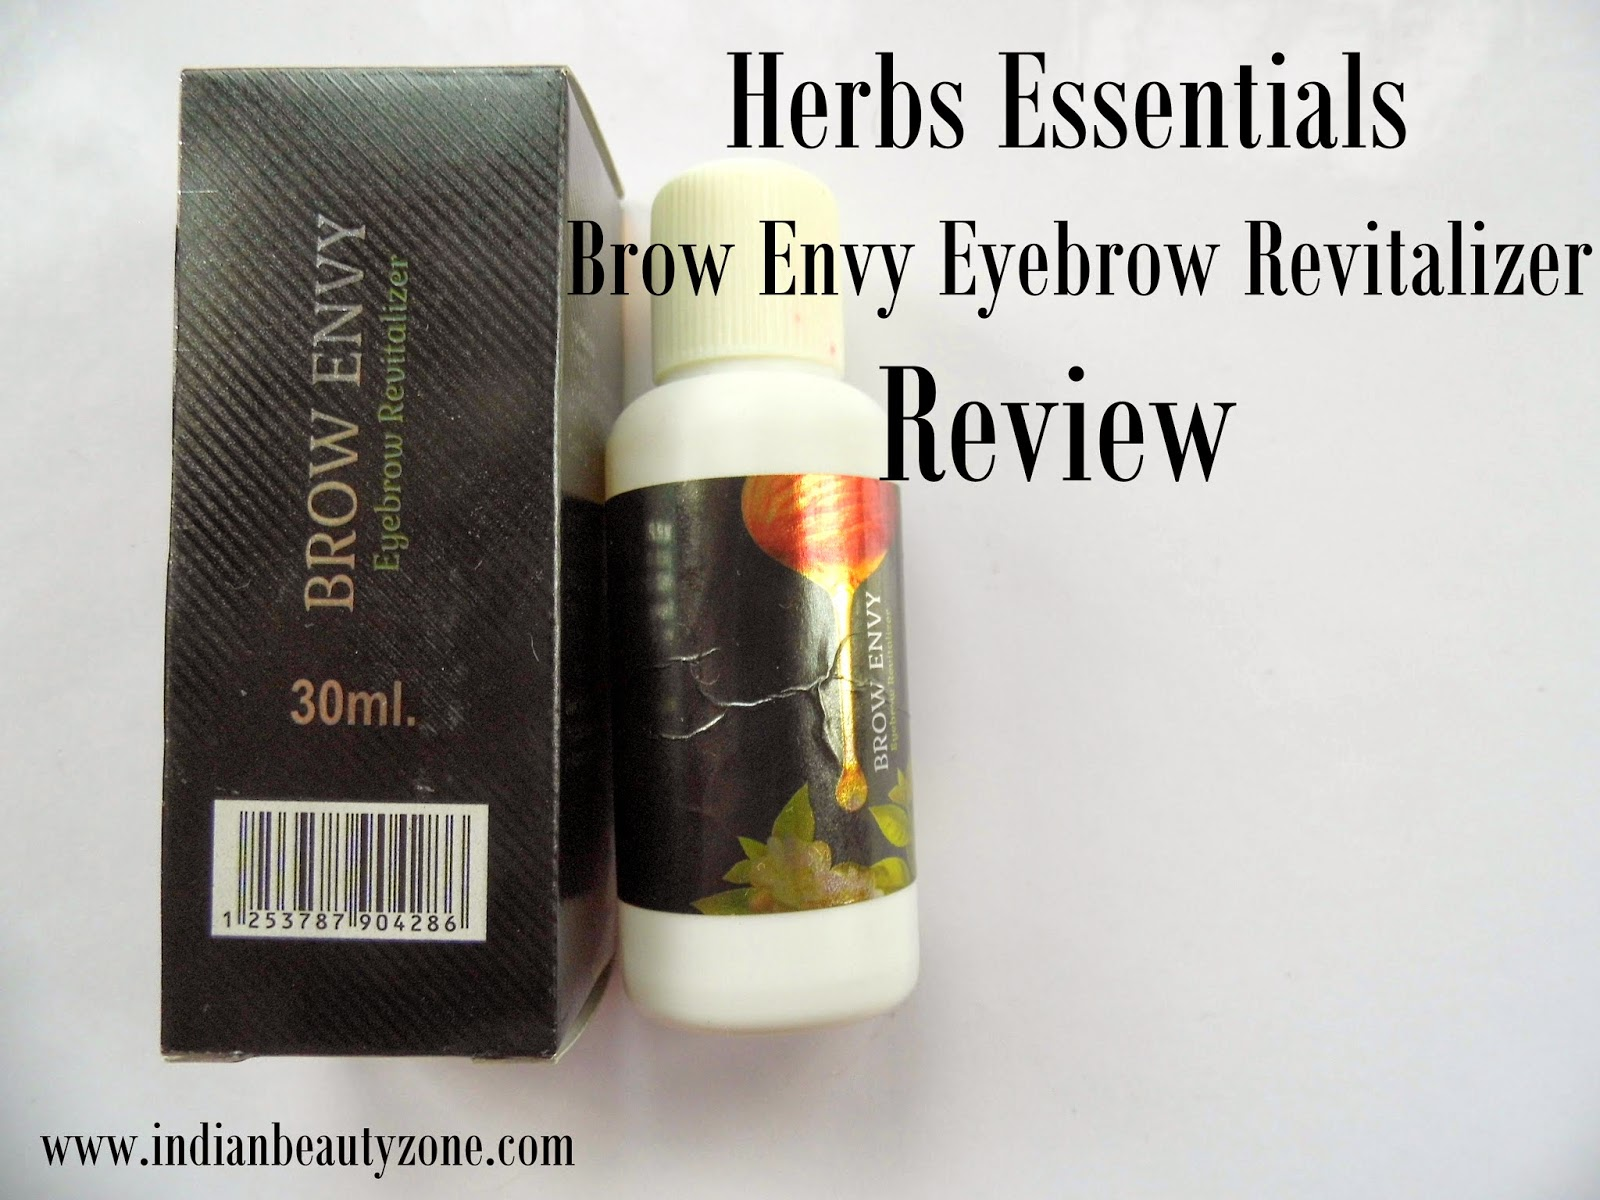 Indian Beauty Zone Herbs Essentials Brow Envy Eyebrow Revitalizer